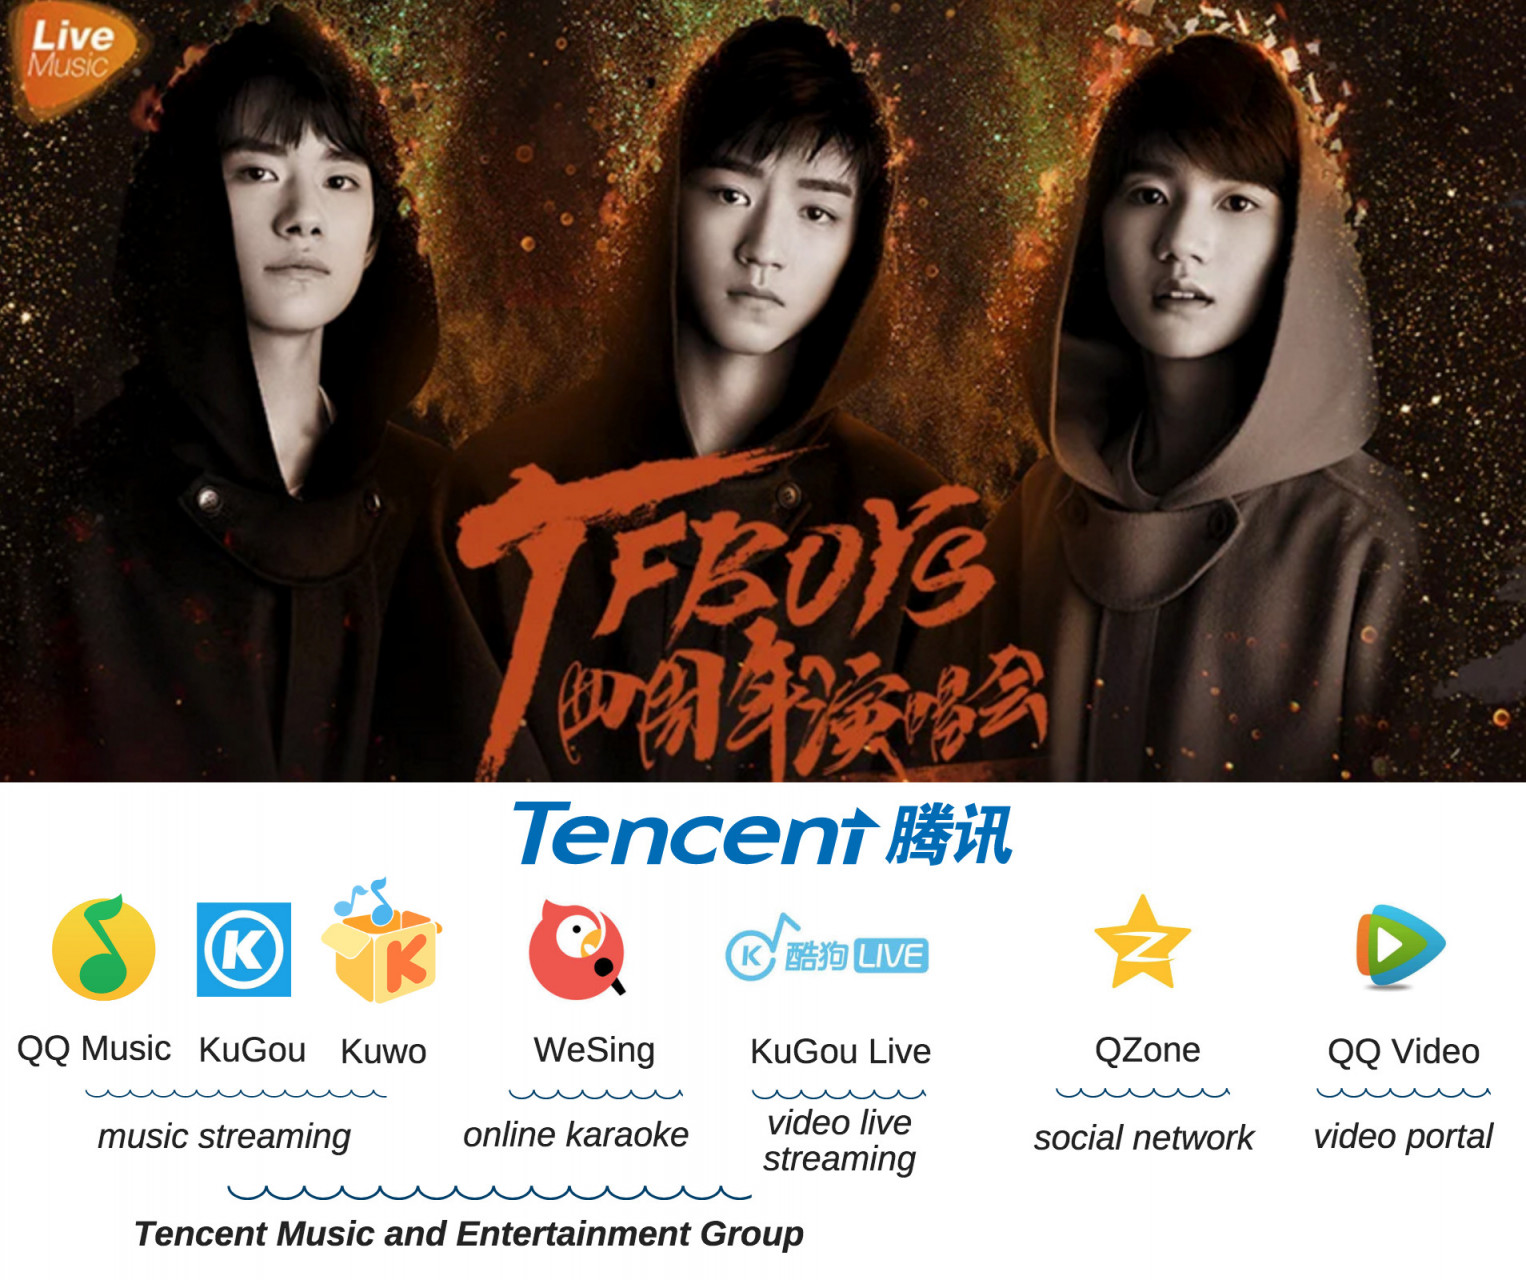 TENCENT MUSIC